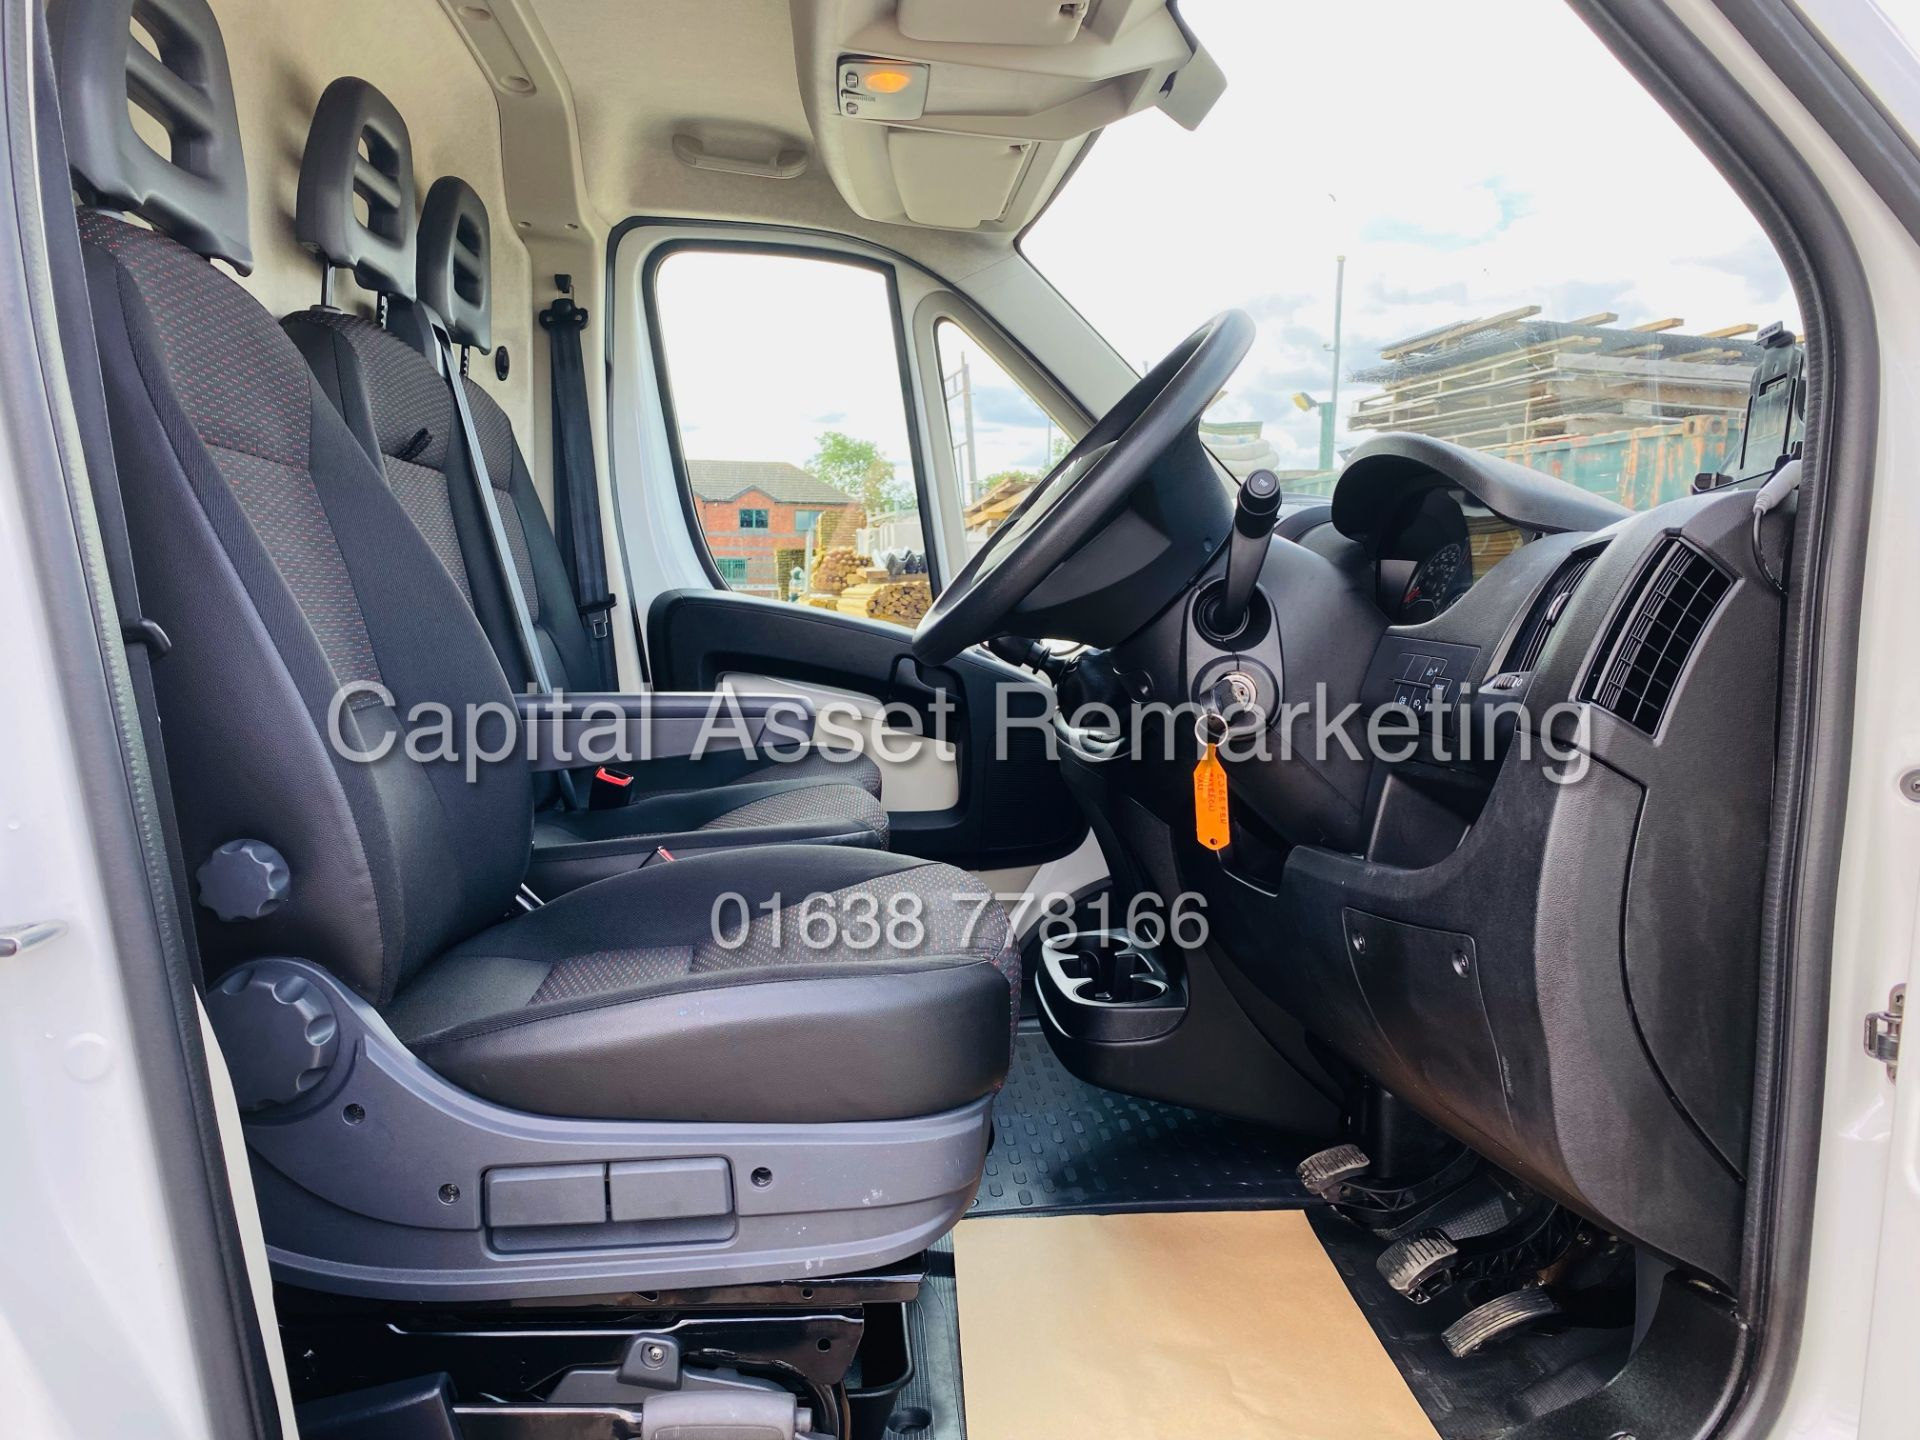 """ON SALE CITROEN RELAY 2.0 BLUE-HDI """"ENTERPRISE"""" L1H1 (2019 MODEL) AIR CON 6882 MILES ON THE CLOCK - Image 13 of 28"""